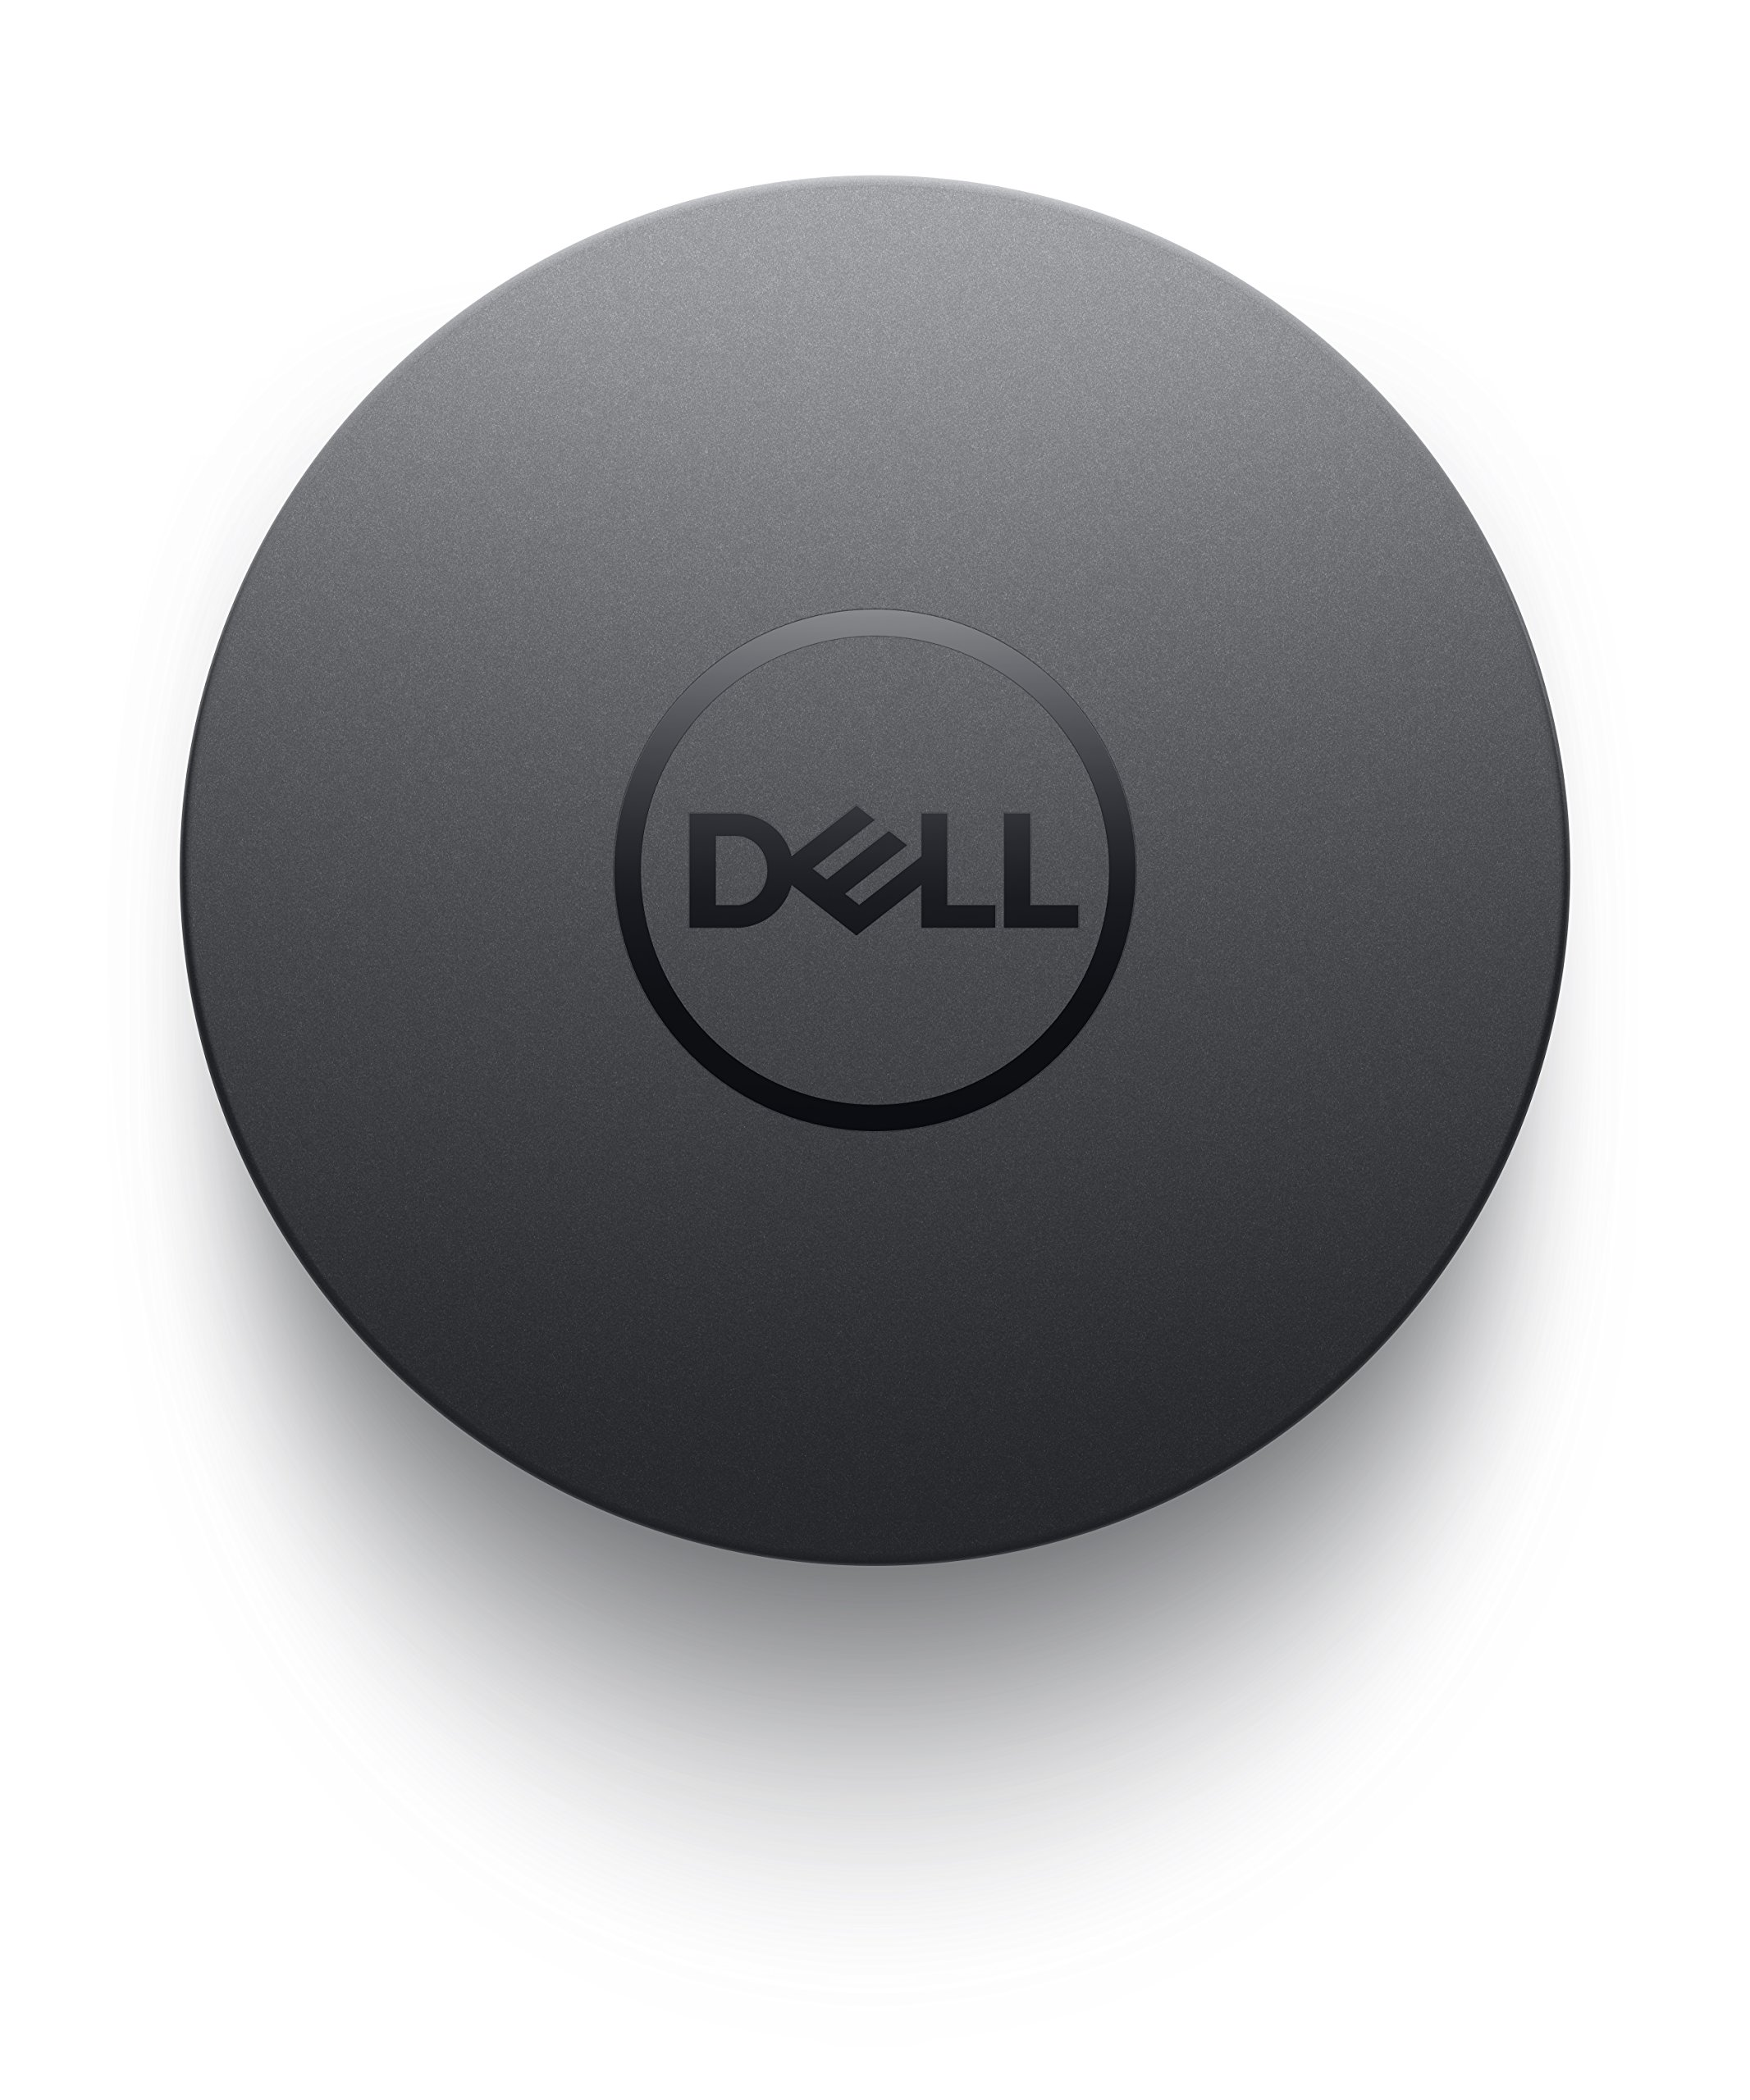 USB-C Mobile Adapter – DA300 by Dell (Image #1)